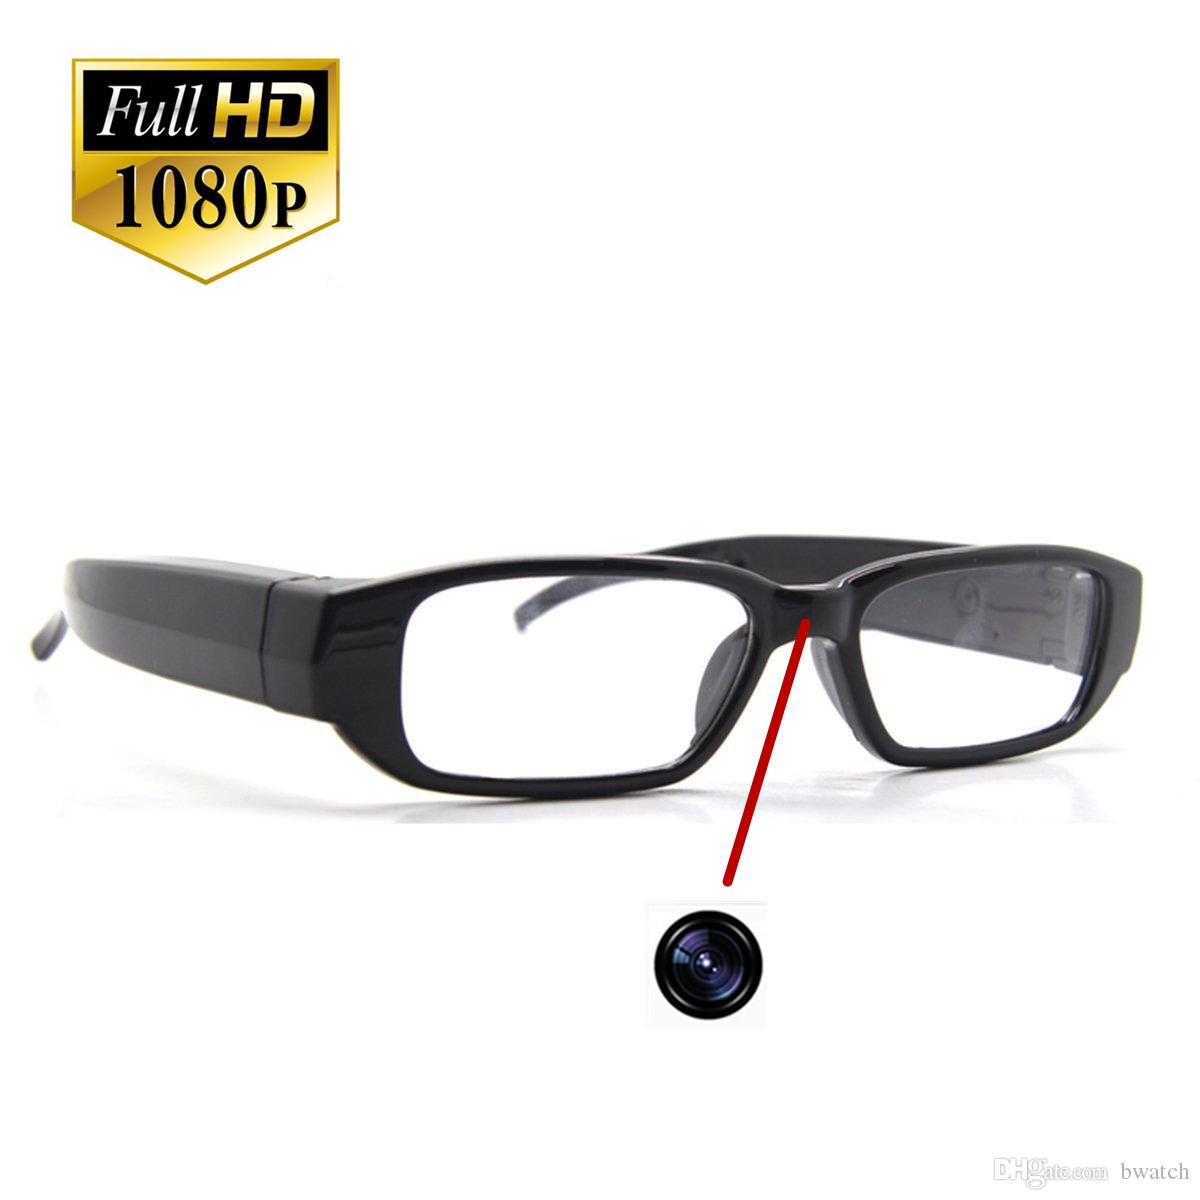 Spy Eyewear Glasses Camera Full Hd 1080p Taking Picture Video ...